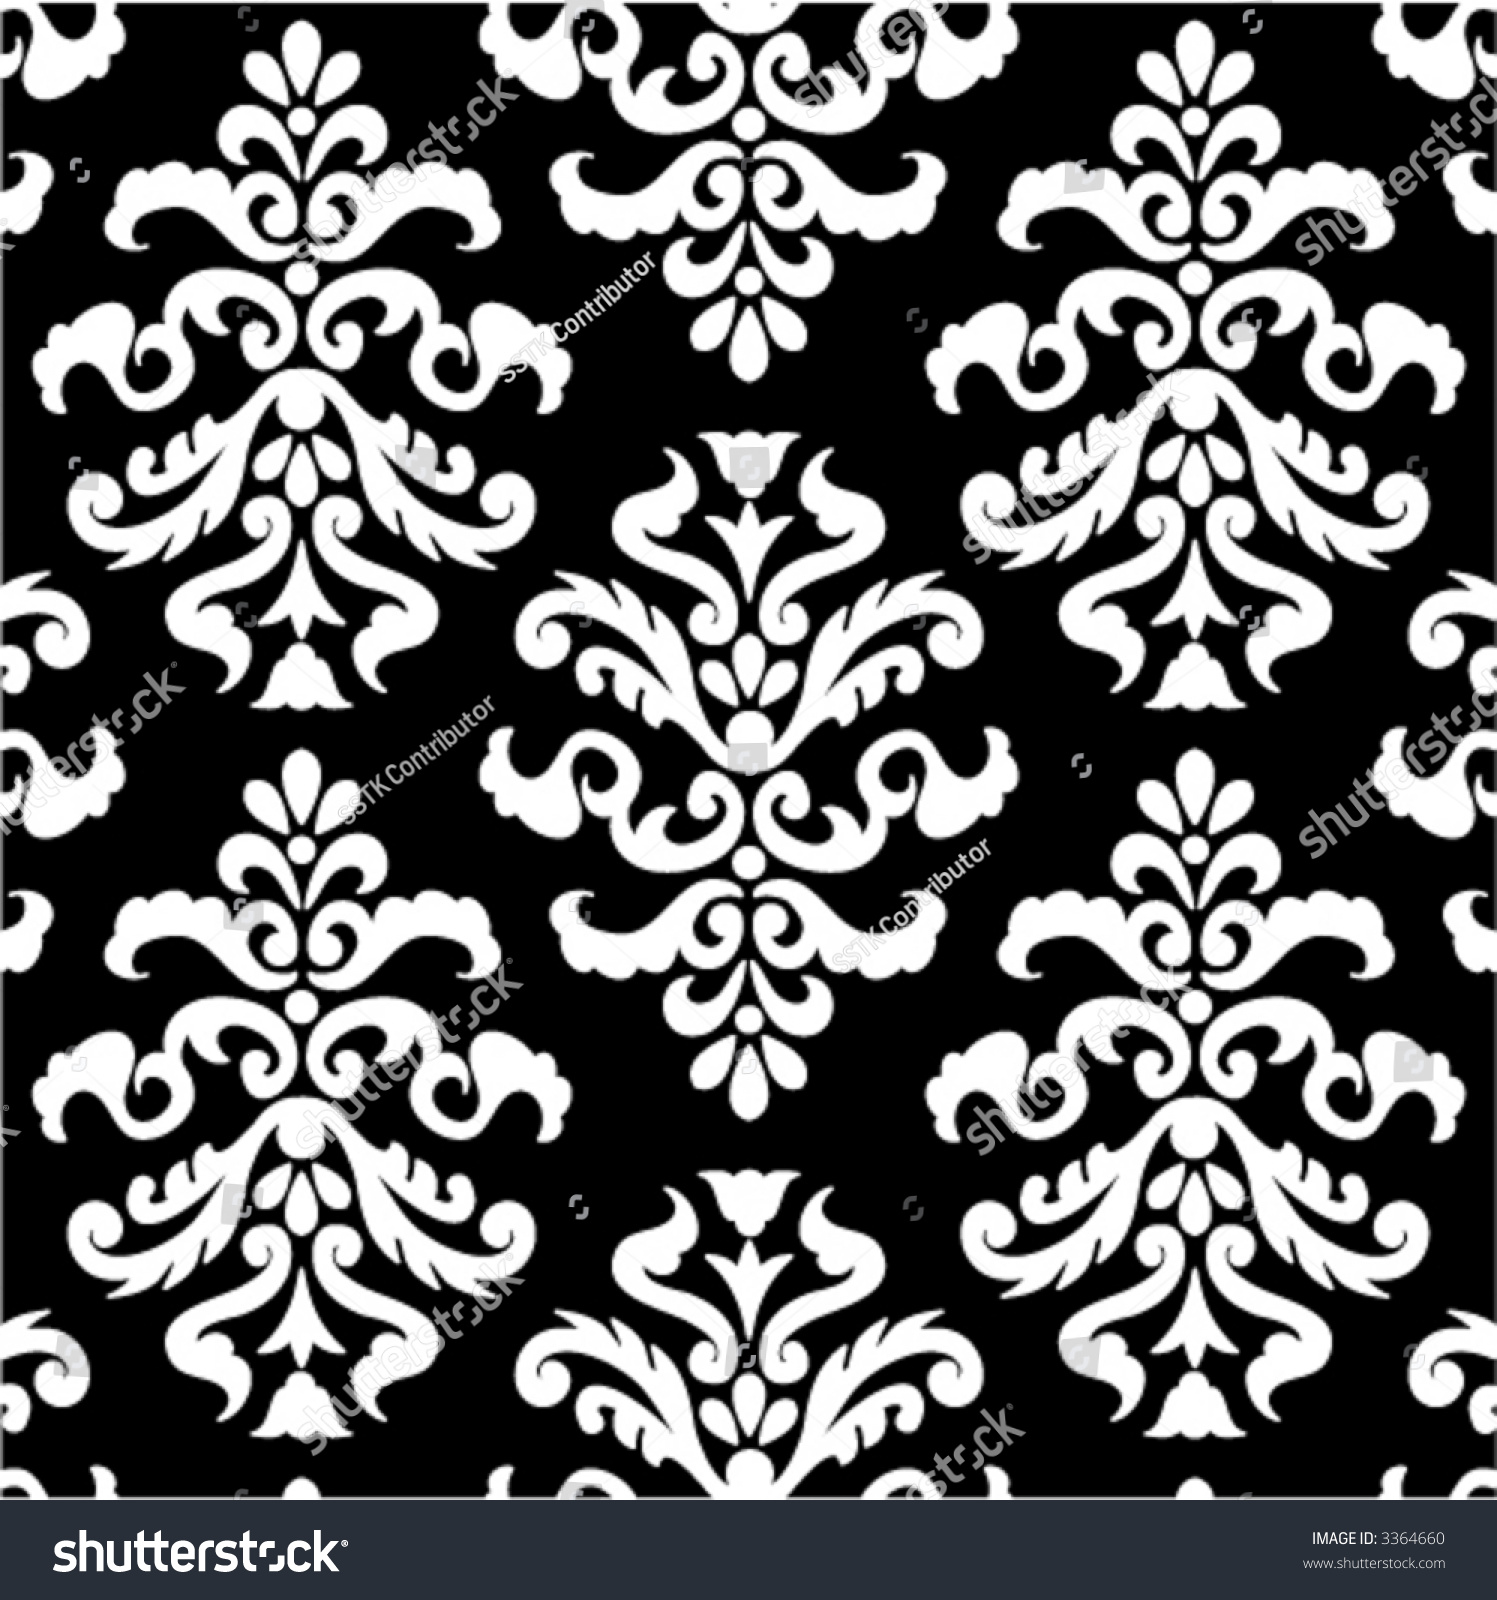 FANCY ORNAMENT WALLPAPER VOL WHITE 01